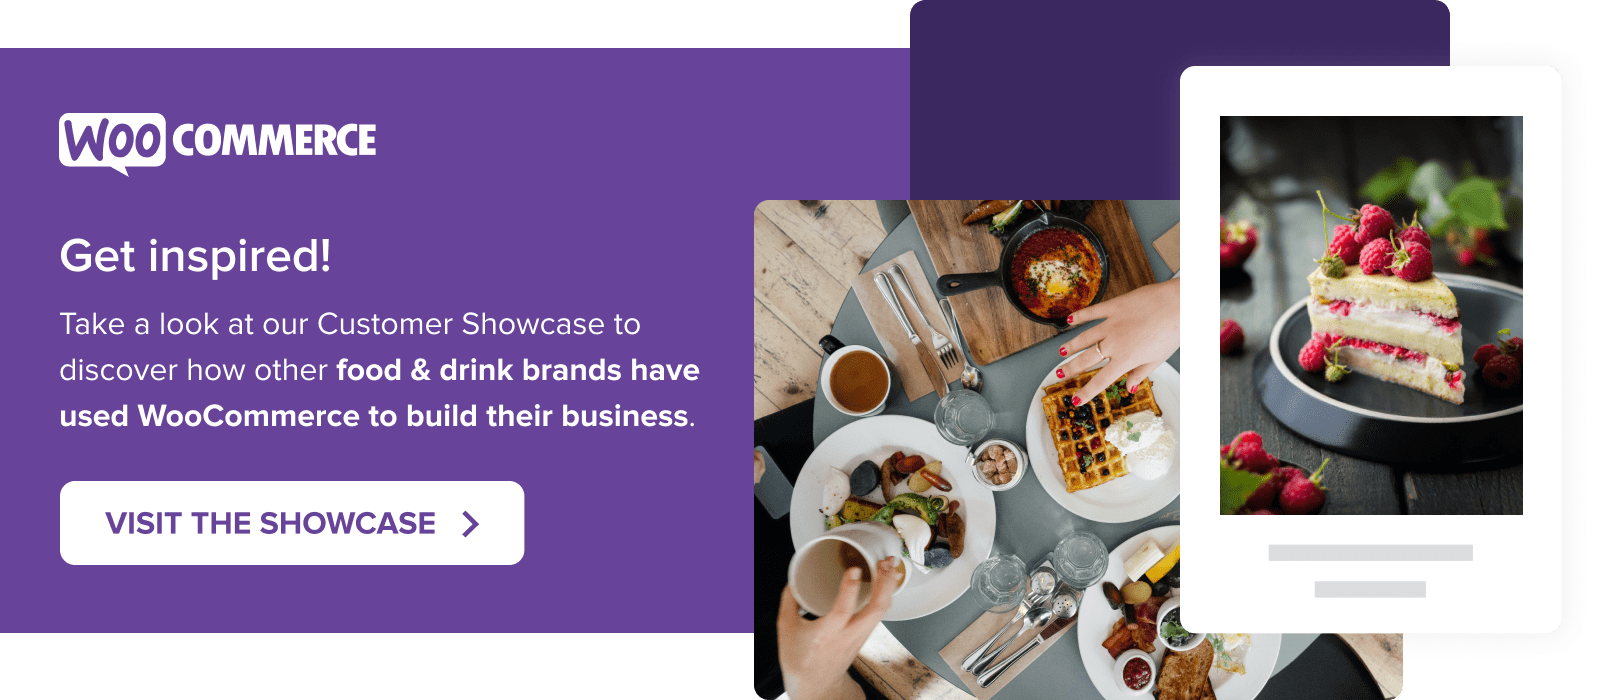 Visit the Customer Showcase to find out how other food & drink brands have used WooCommerce